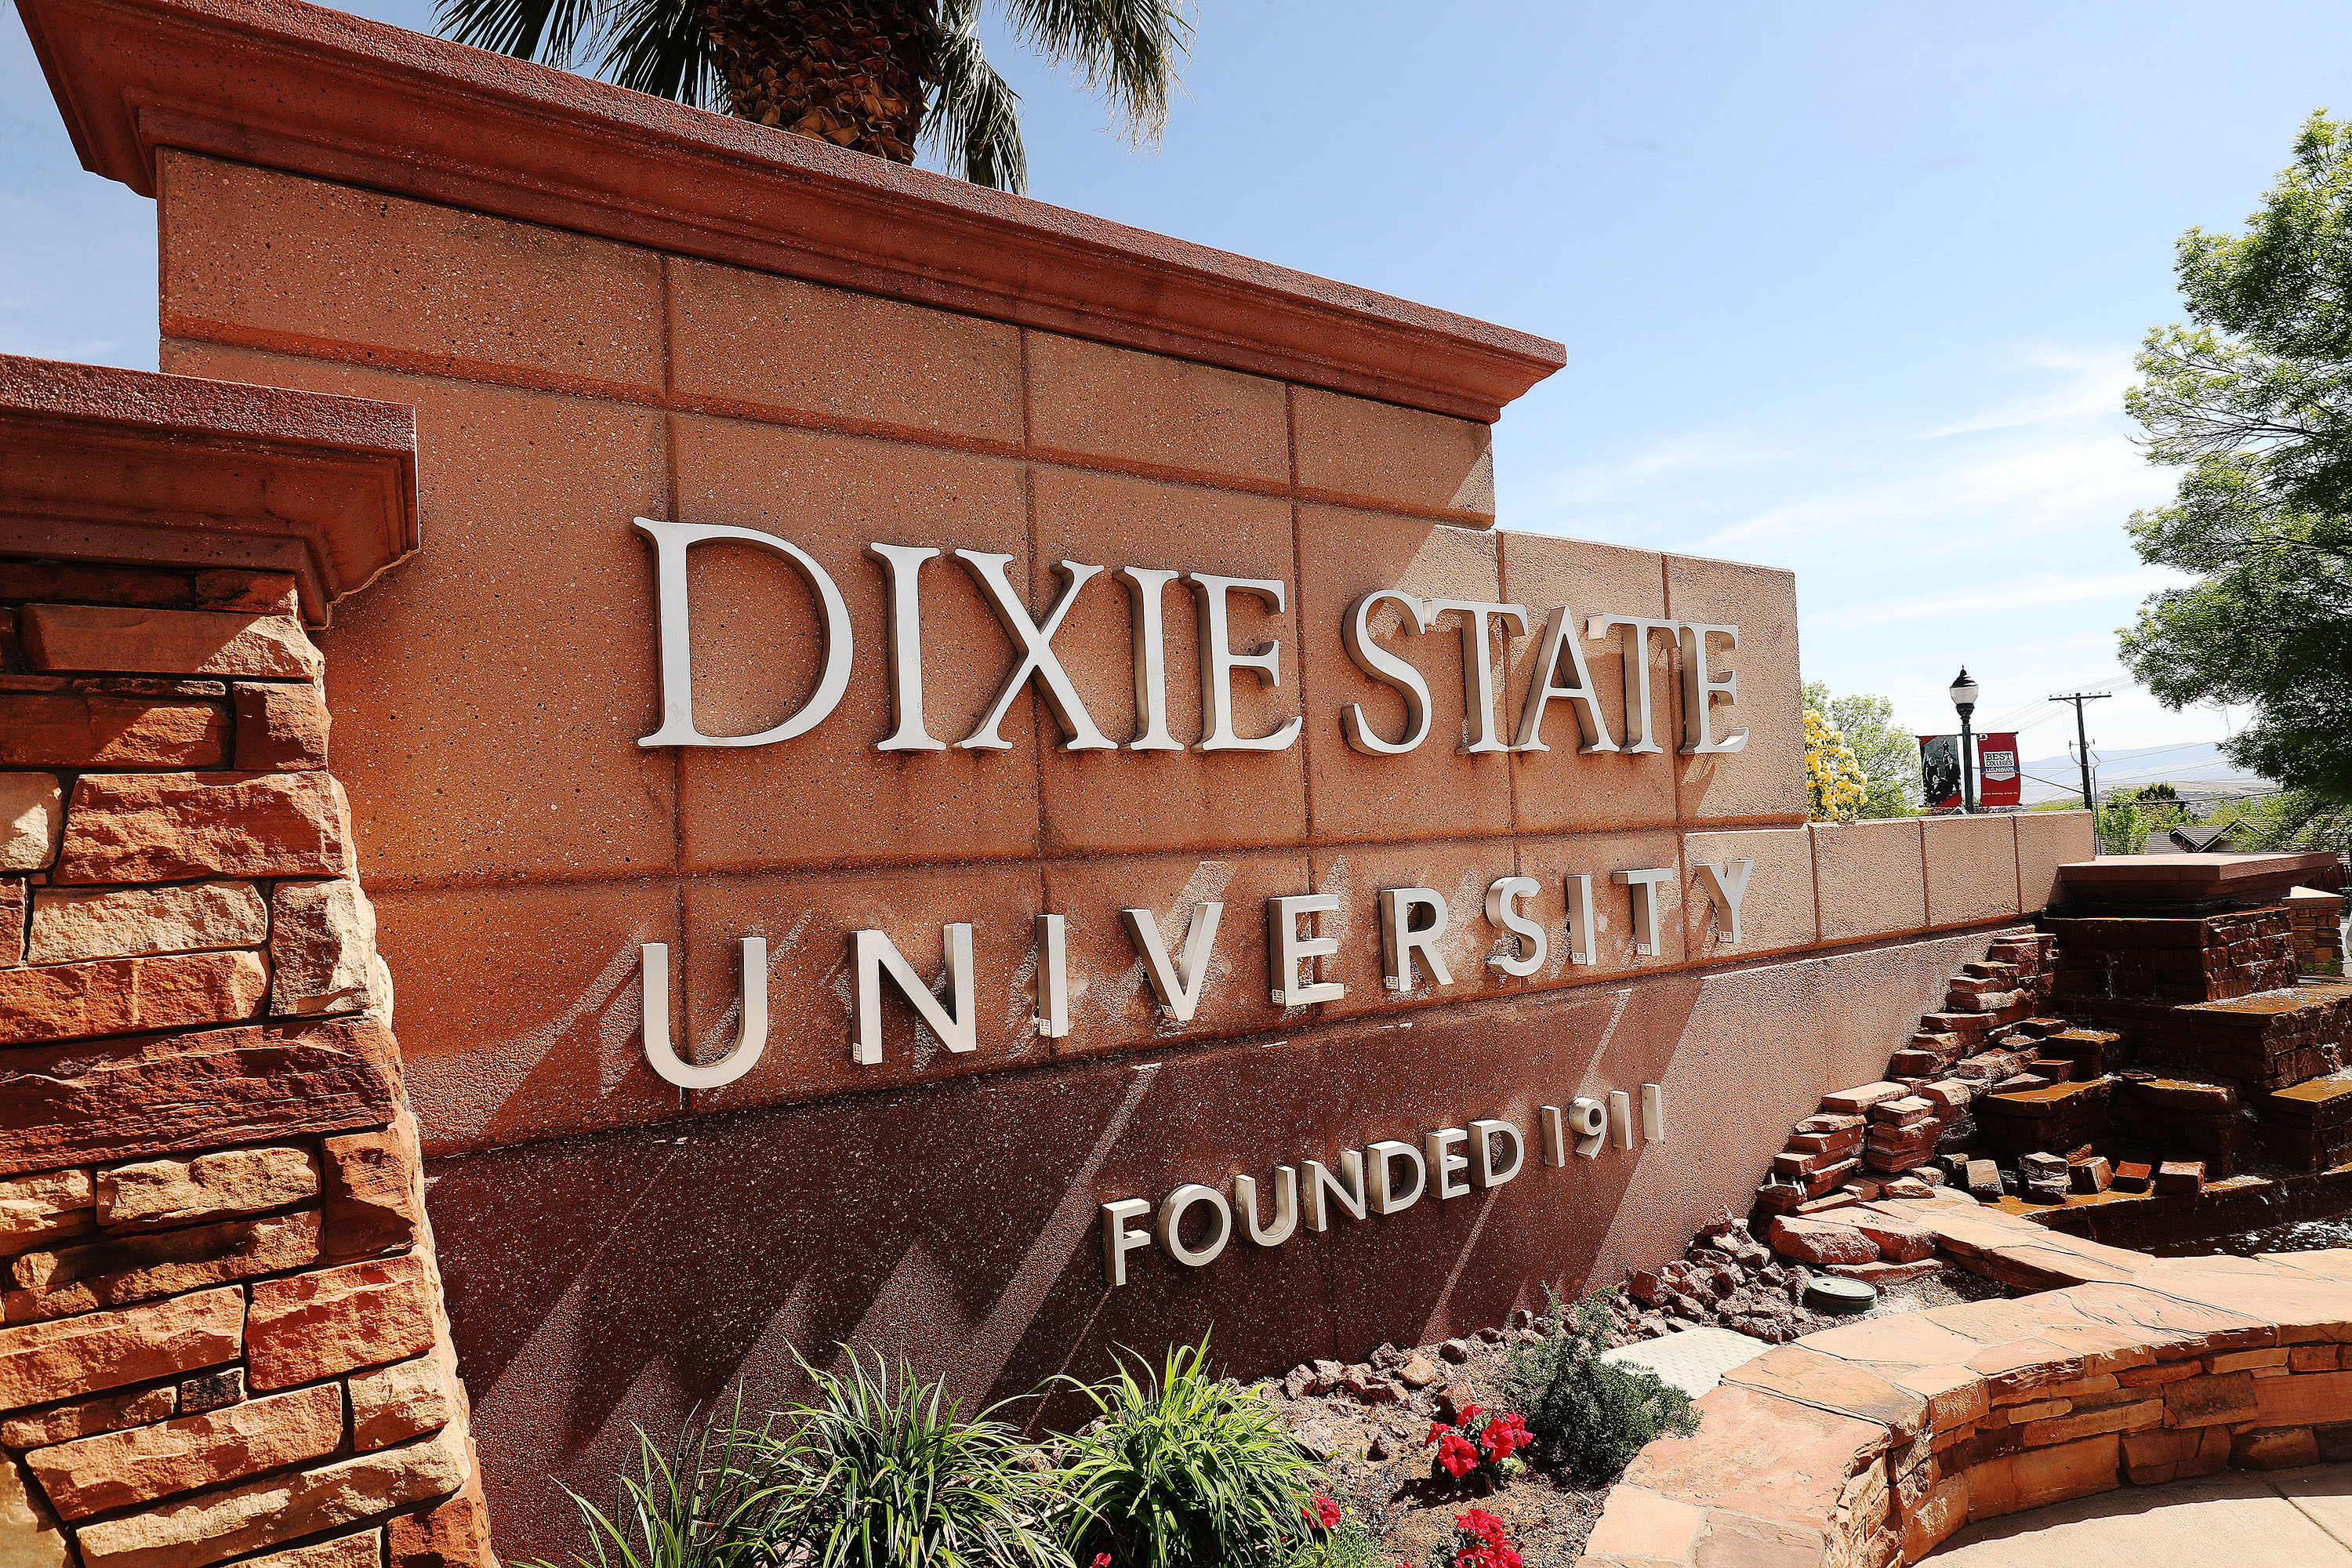 Dixie State University in St. George is pictured on Friday, April 9, 2021. The Dixie State University board of trustees' executive committee has began a name change process for the university.